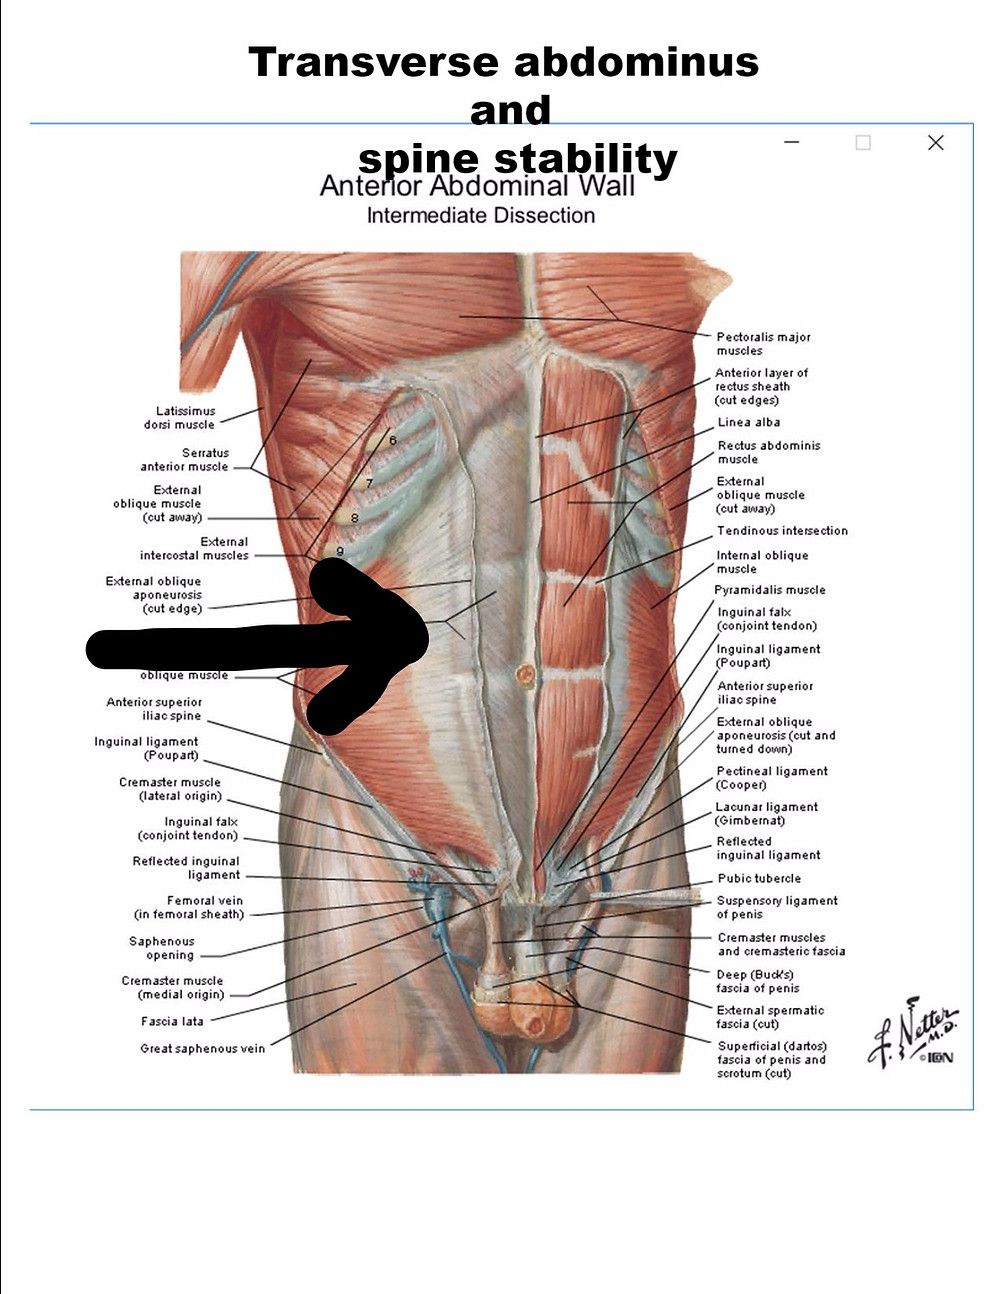 Transverse abdominus and spinal stability